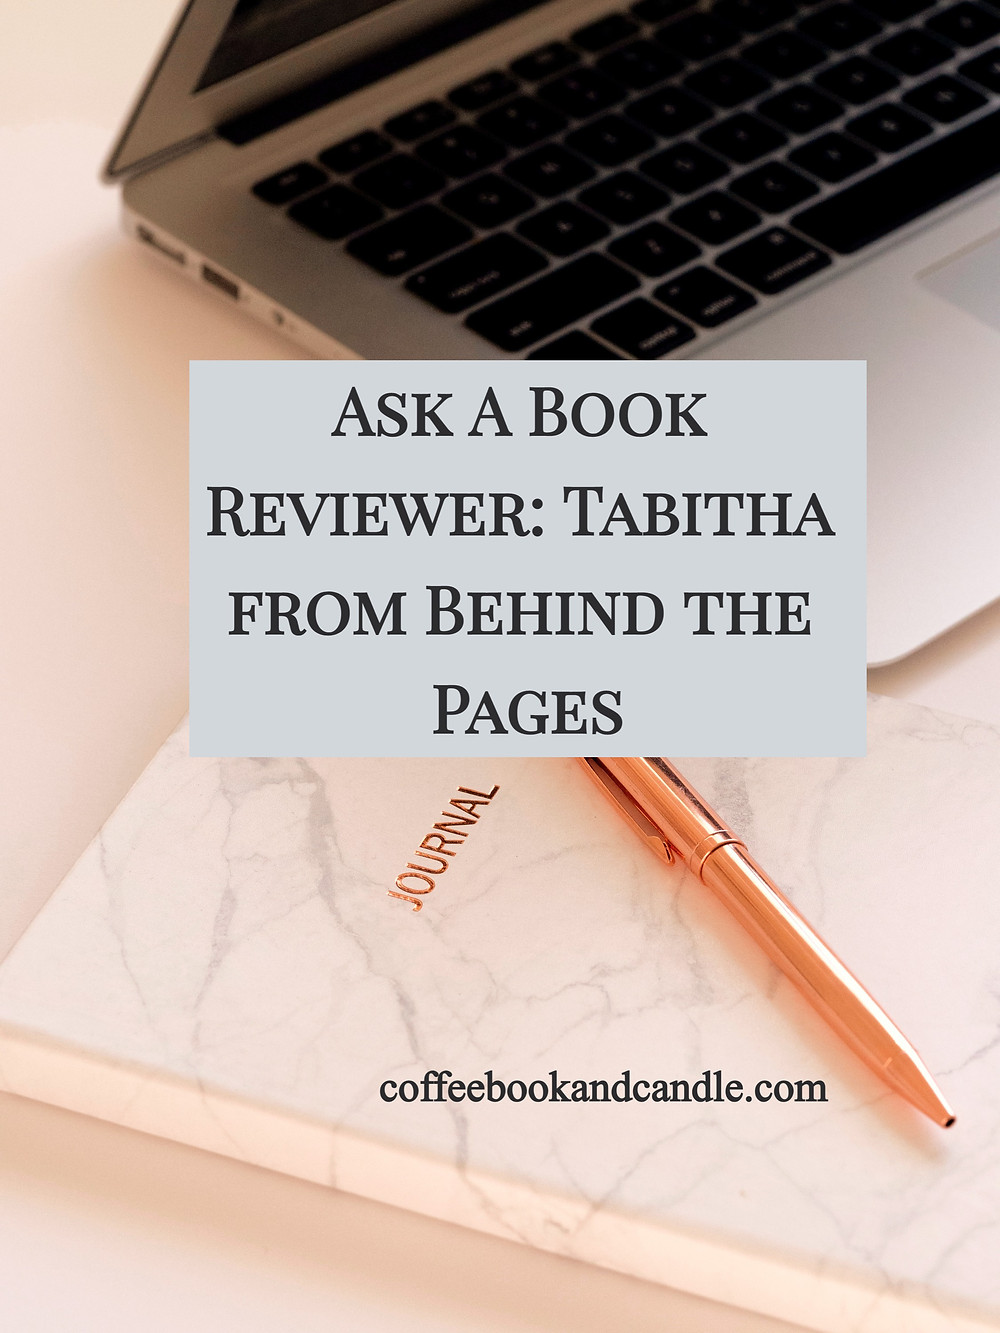 Ask a Book Reviewer with Coffee Book and Candle